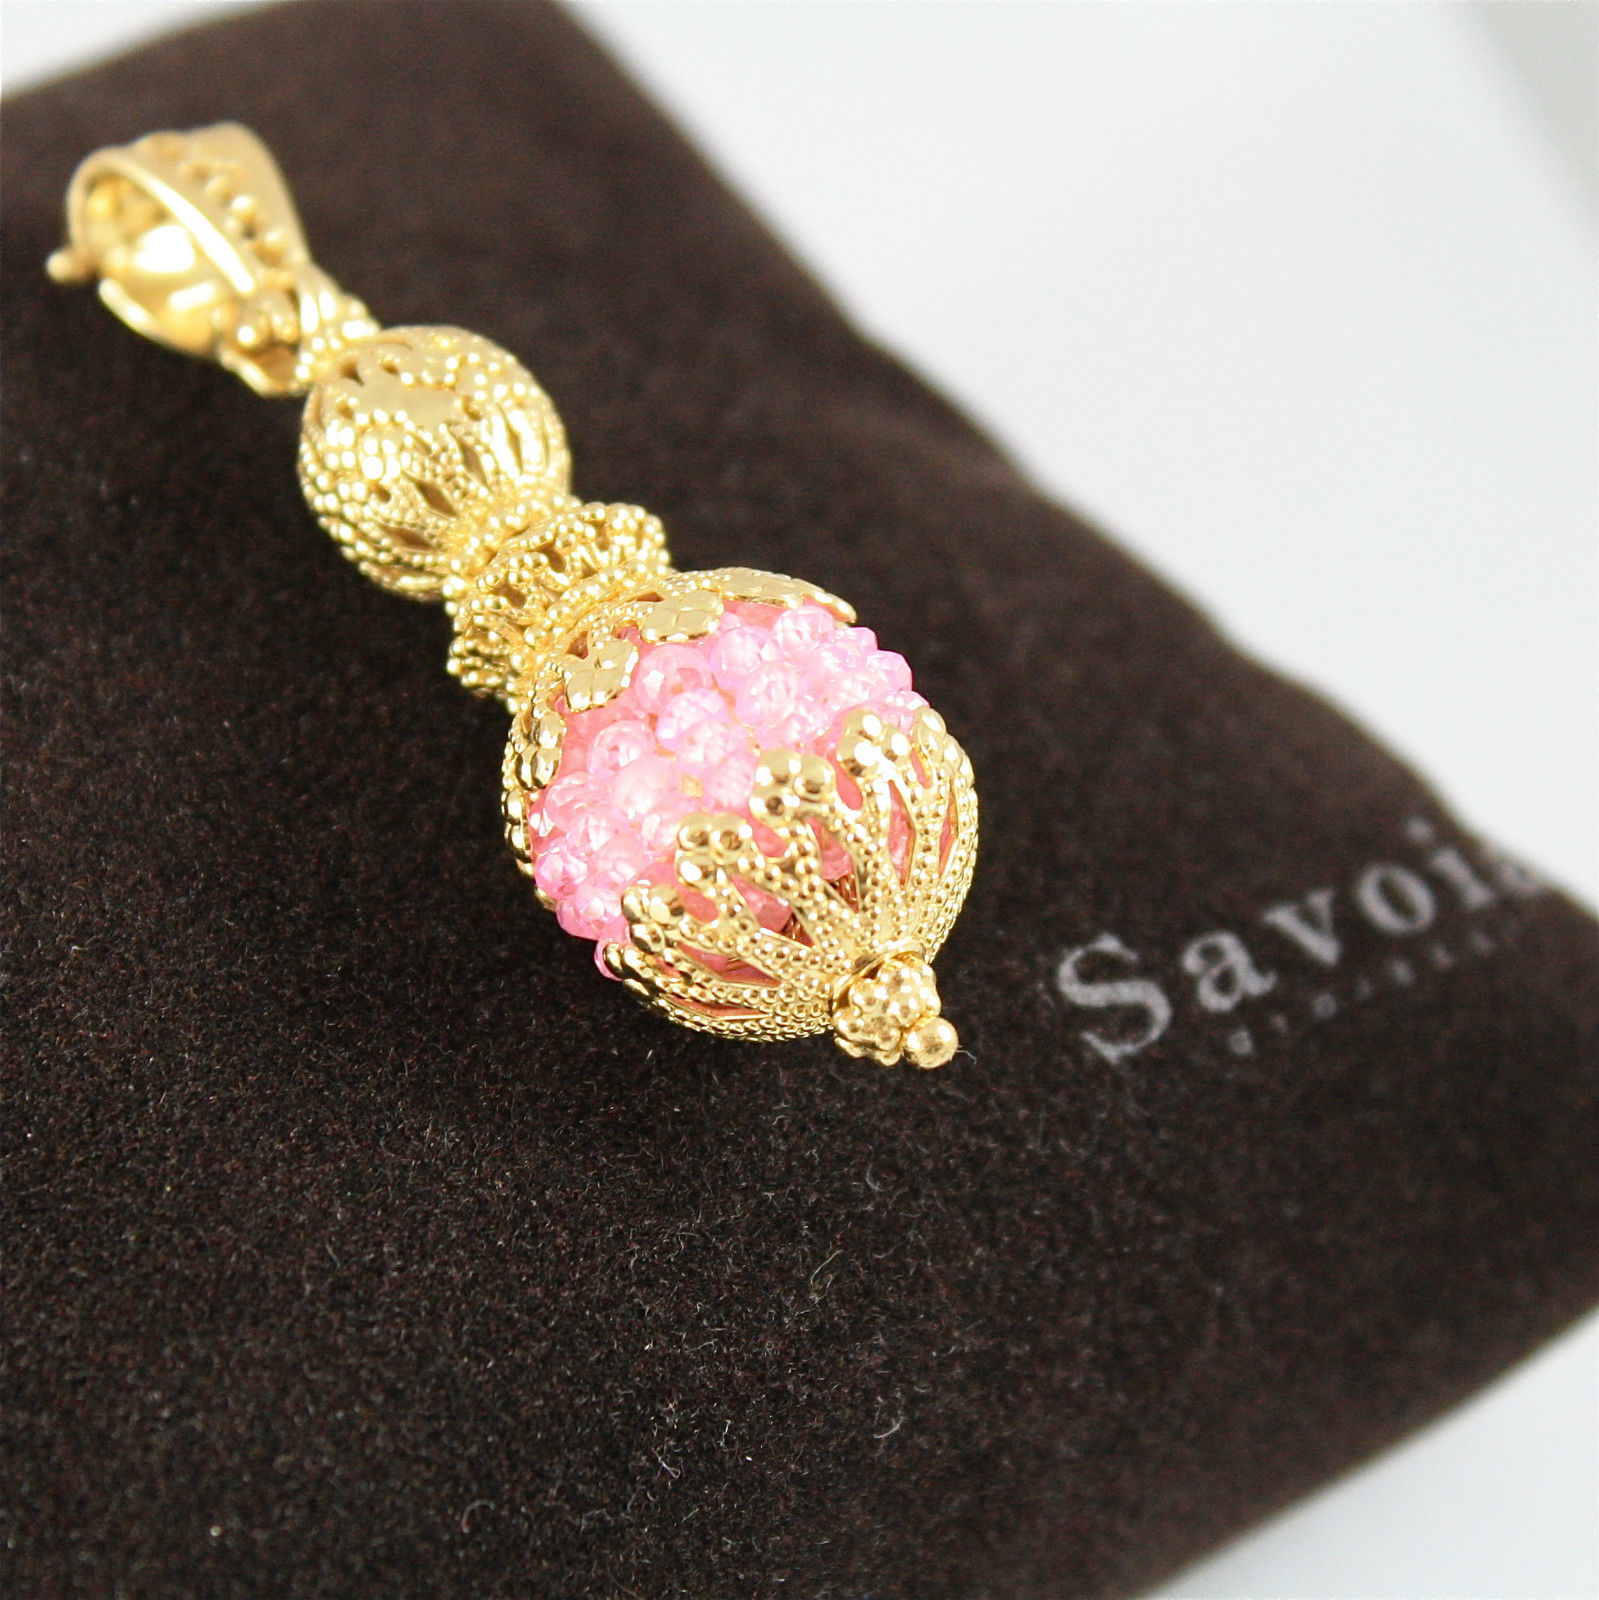 925 SILVER PENDANT PL. GOLD FACETED PINK SALOMITE MADE IN ITALY BY SAVOIA JEWELS